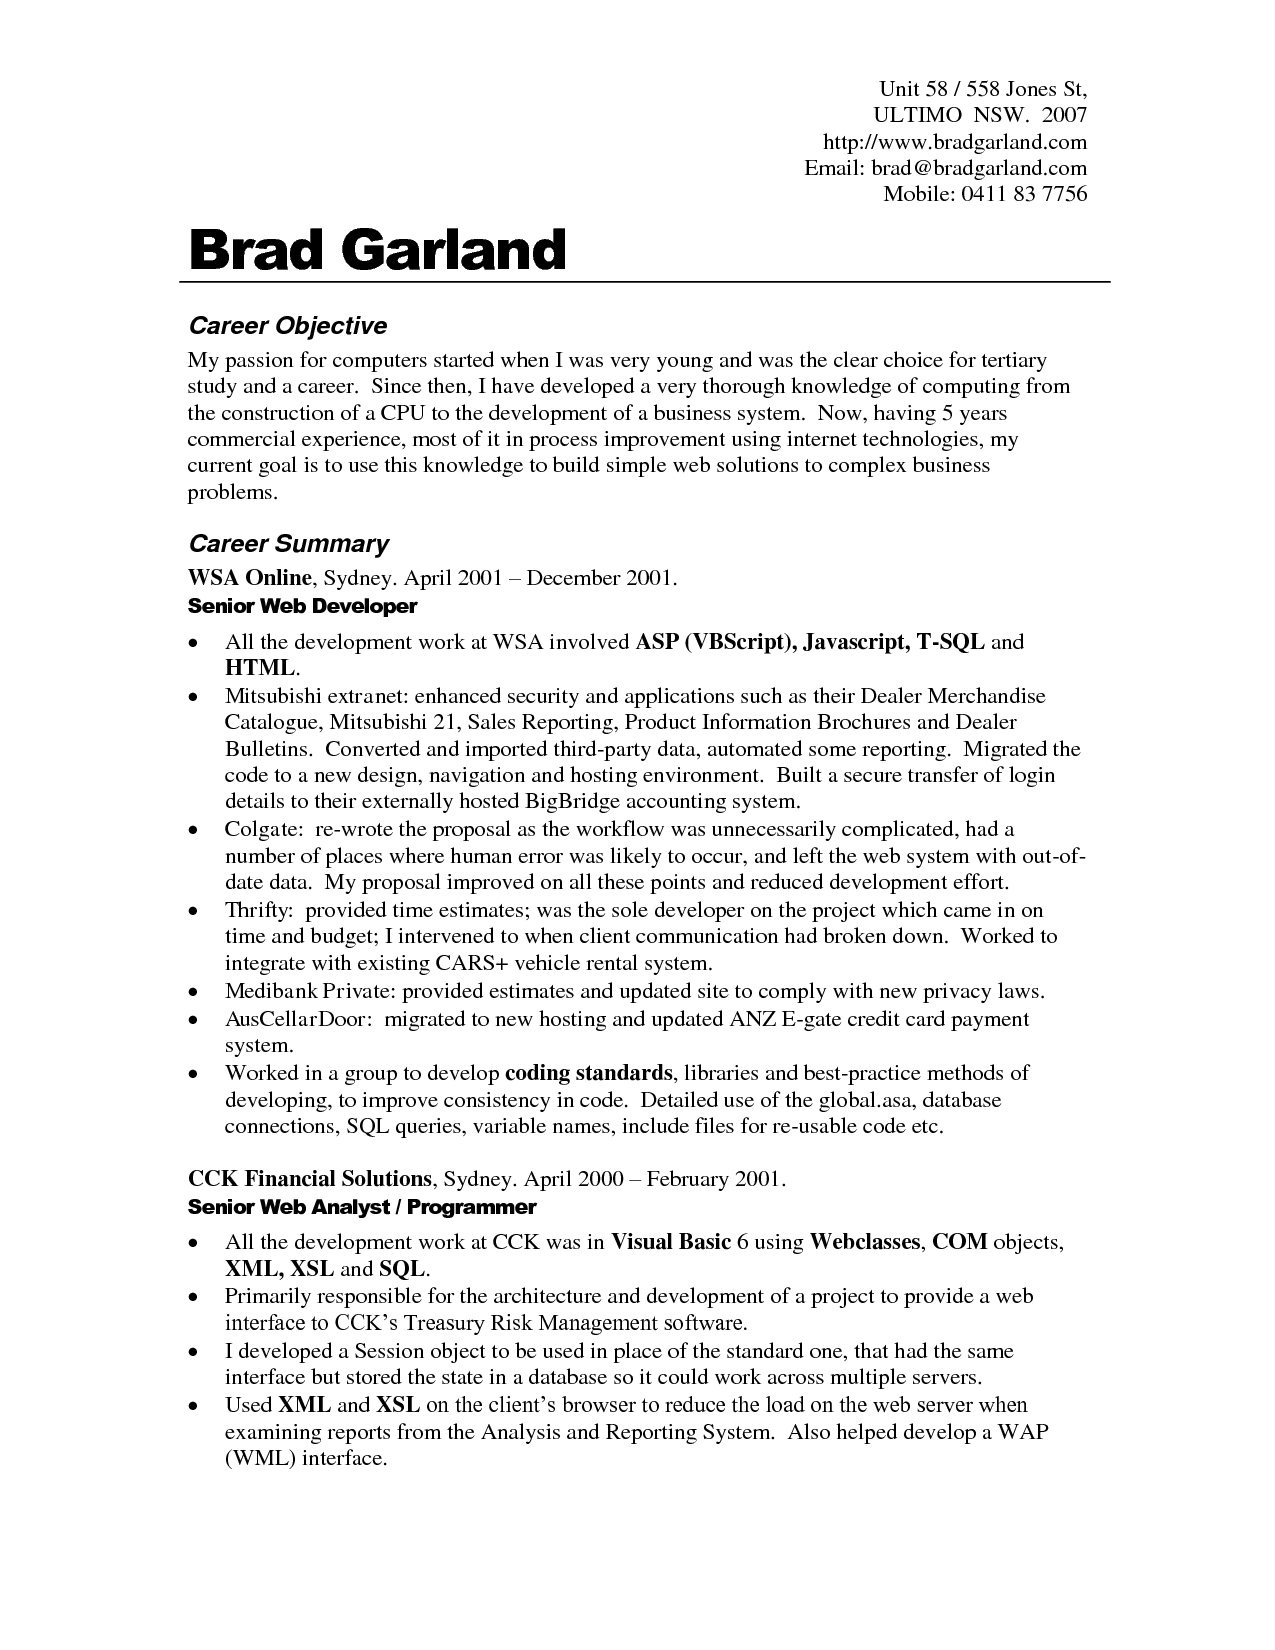 Job Objective On Resume Resume Objectives Examples Best Templateresume Objective Examples